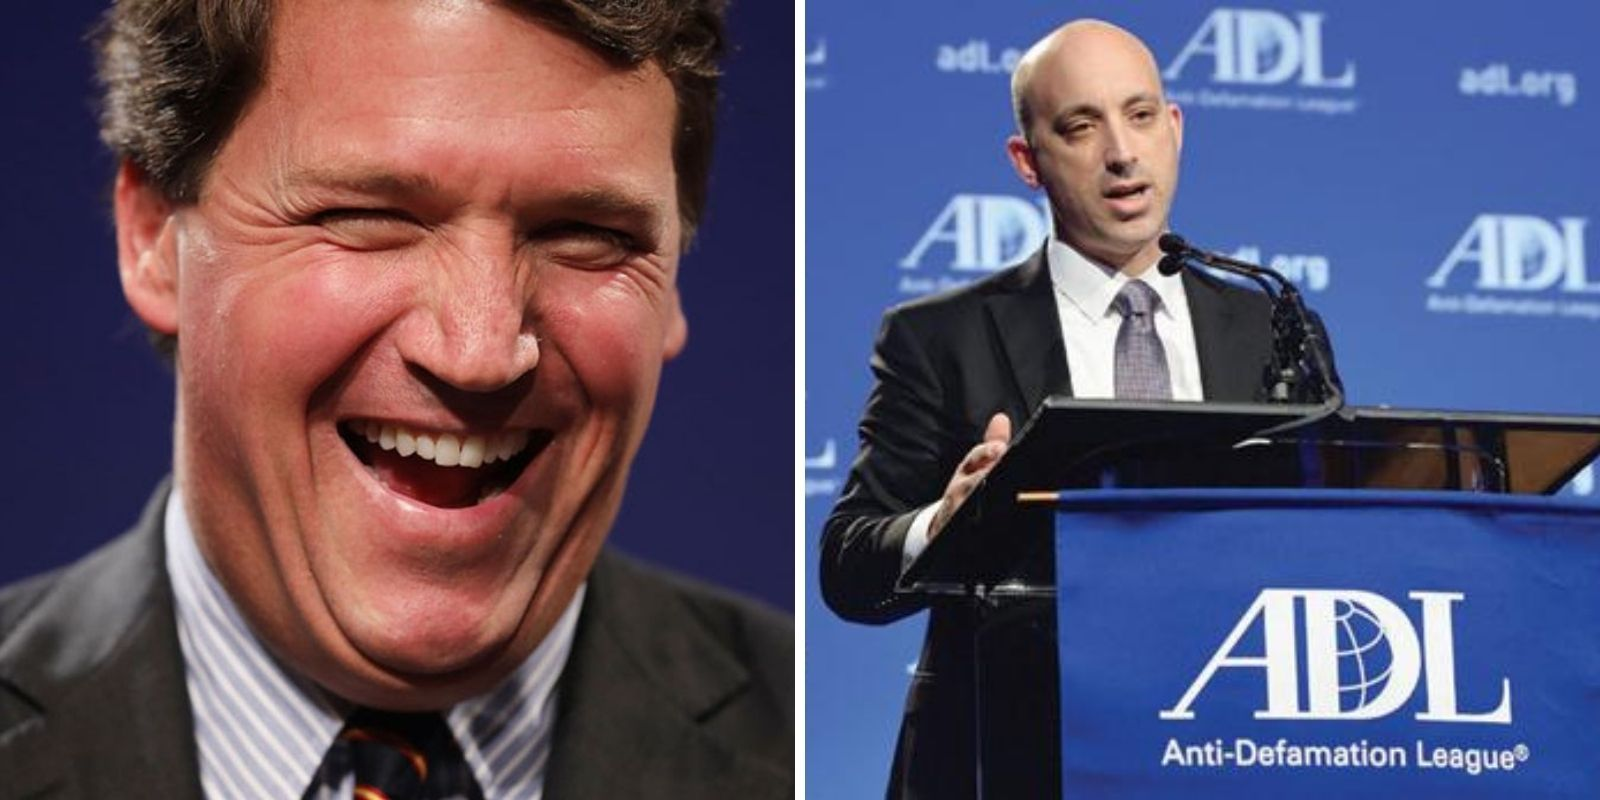 Tucker Carlson laughs off ADL's calls to fire him: 'Oh, f*ck them'